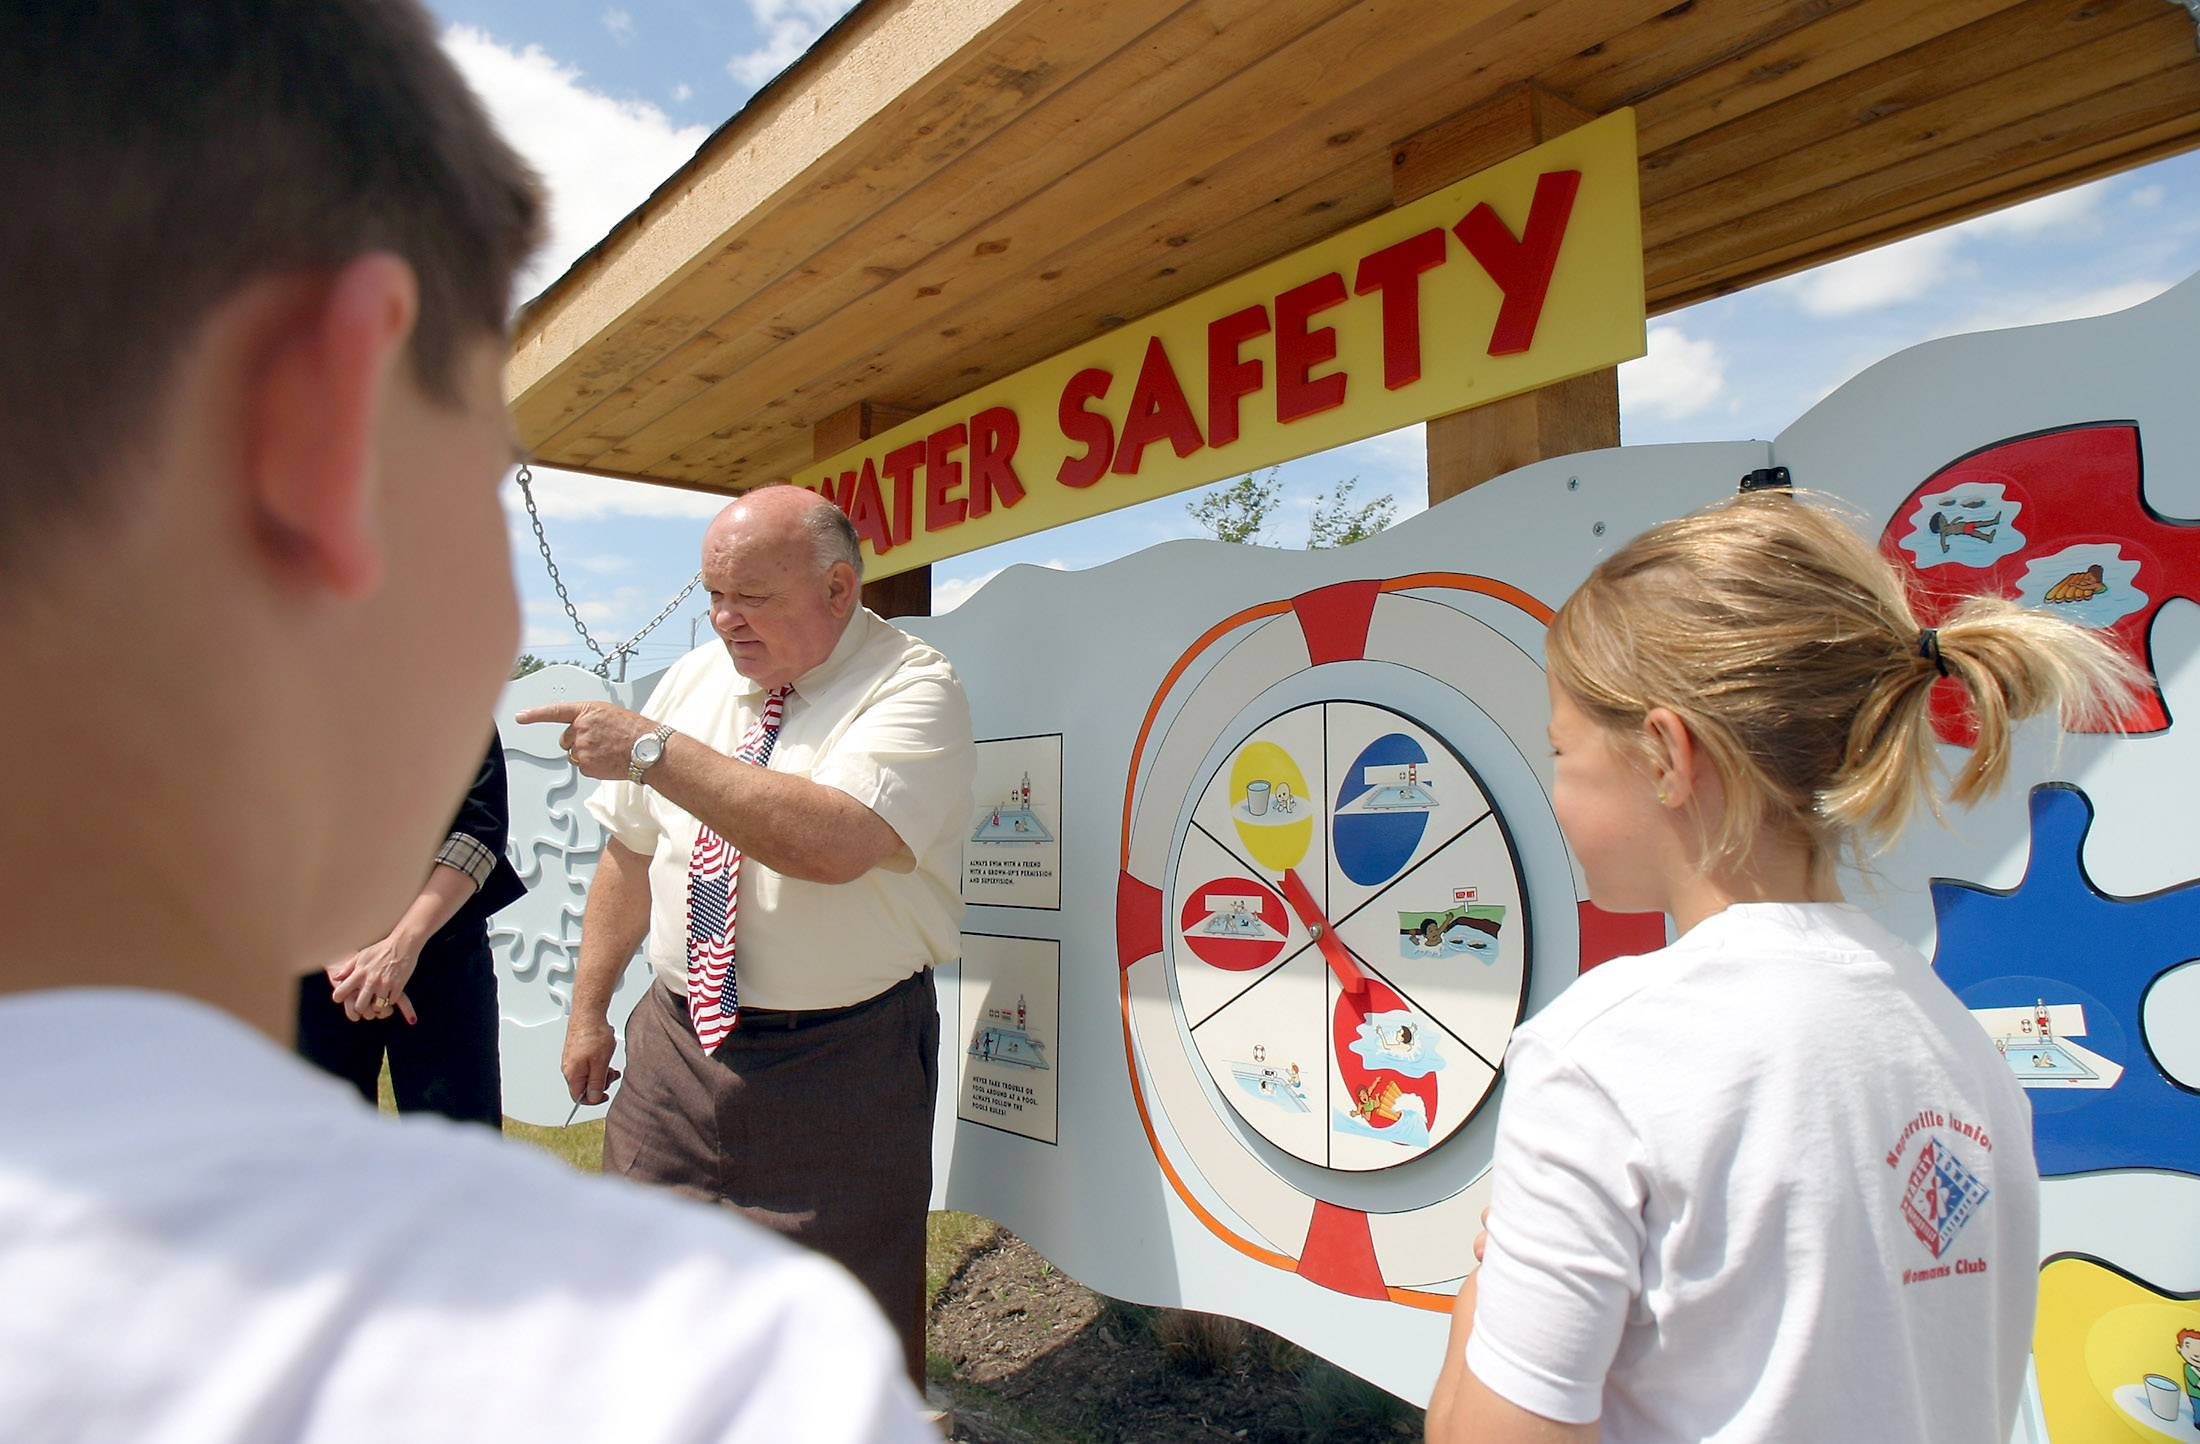 Creating a permanent location for Safety Town in Naperville is longtime Mayor George Pradel's proudest accomplishment from his years as a police officer and elected leader in the city. Pradel is being honored for his service Friday with the Naperville Area Chamber of Commerce's Lifetime Achievement Award.